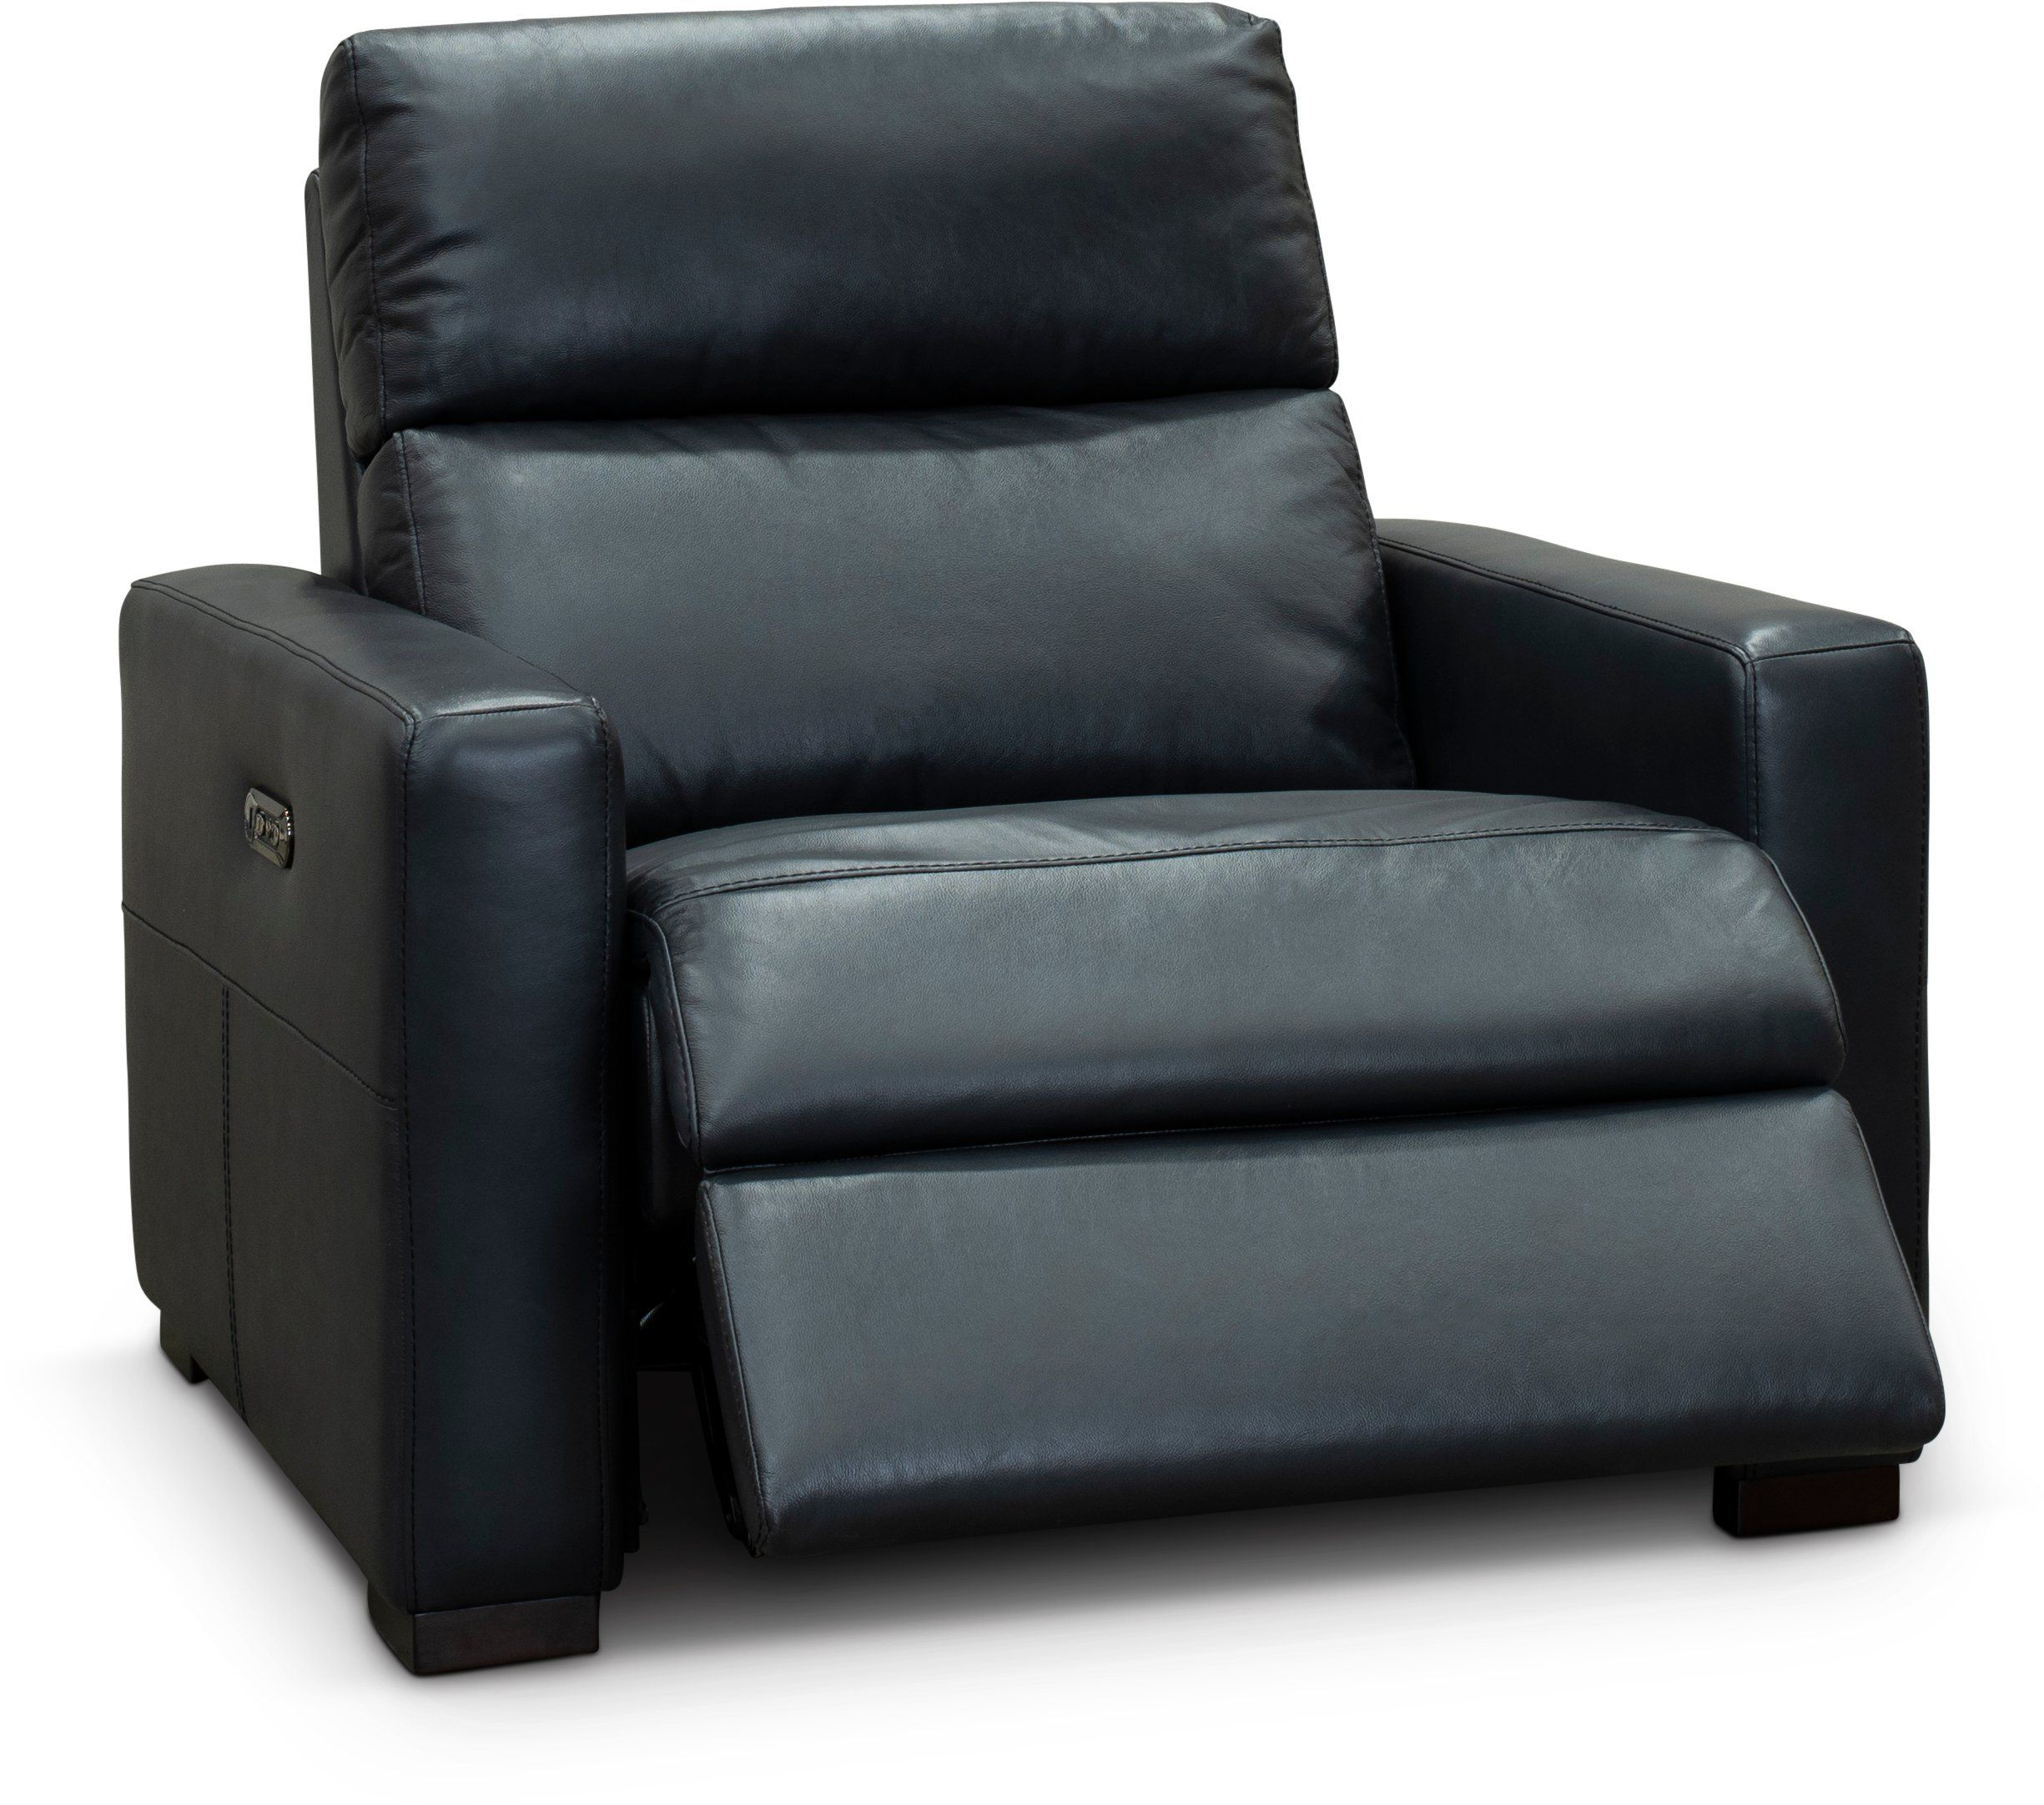 Tremendous Navy Blue Leather Match Power Recliner Chair And A Half Gmtry Best Dining Table And Chair Ideas Images Gmtryco